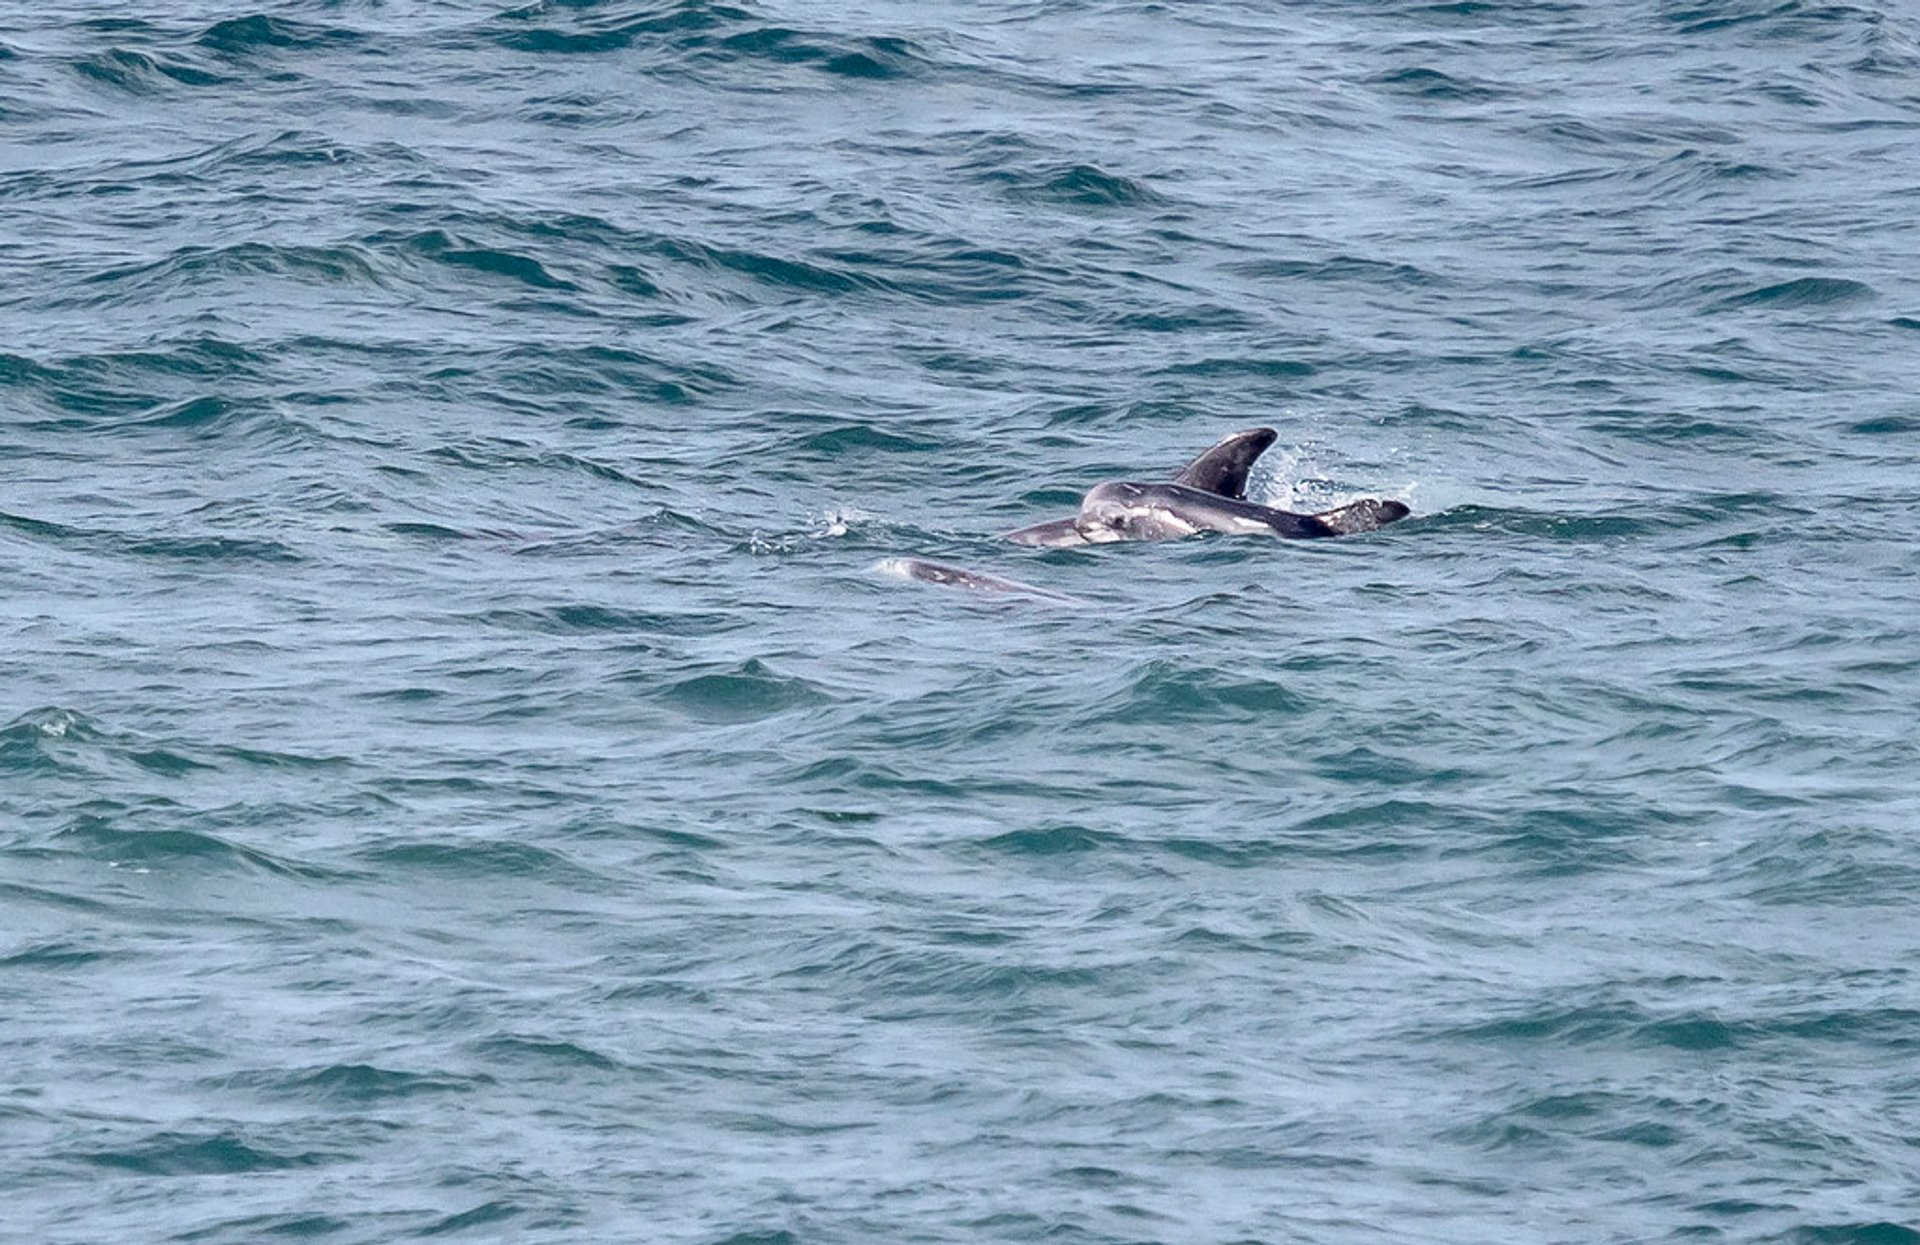 Rissos Dolphins off the coast near Strumble Hd in Pembrokeshire 2020